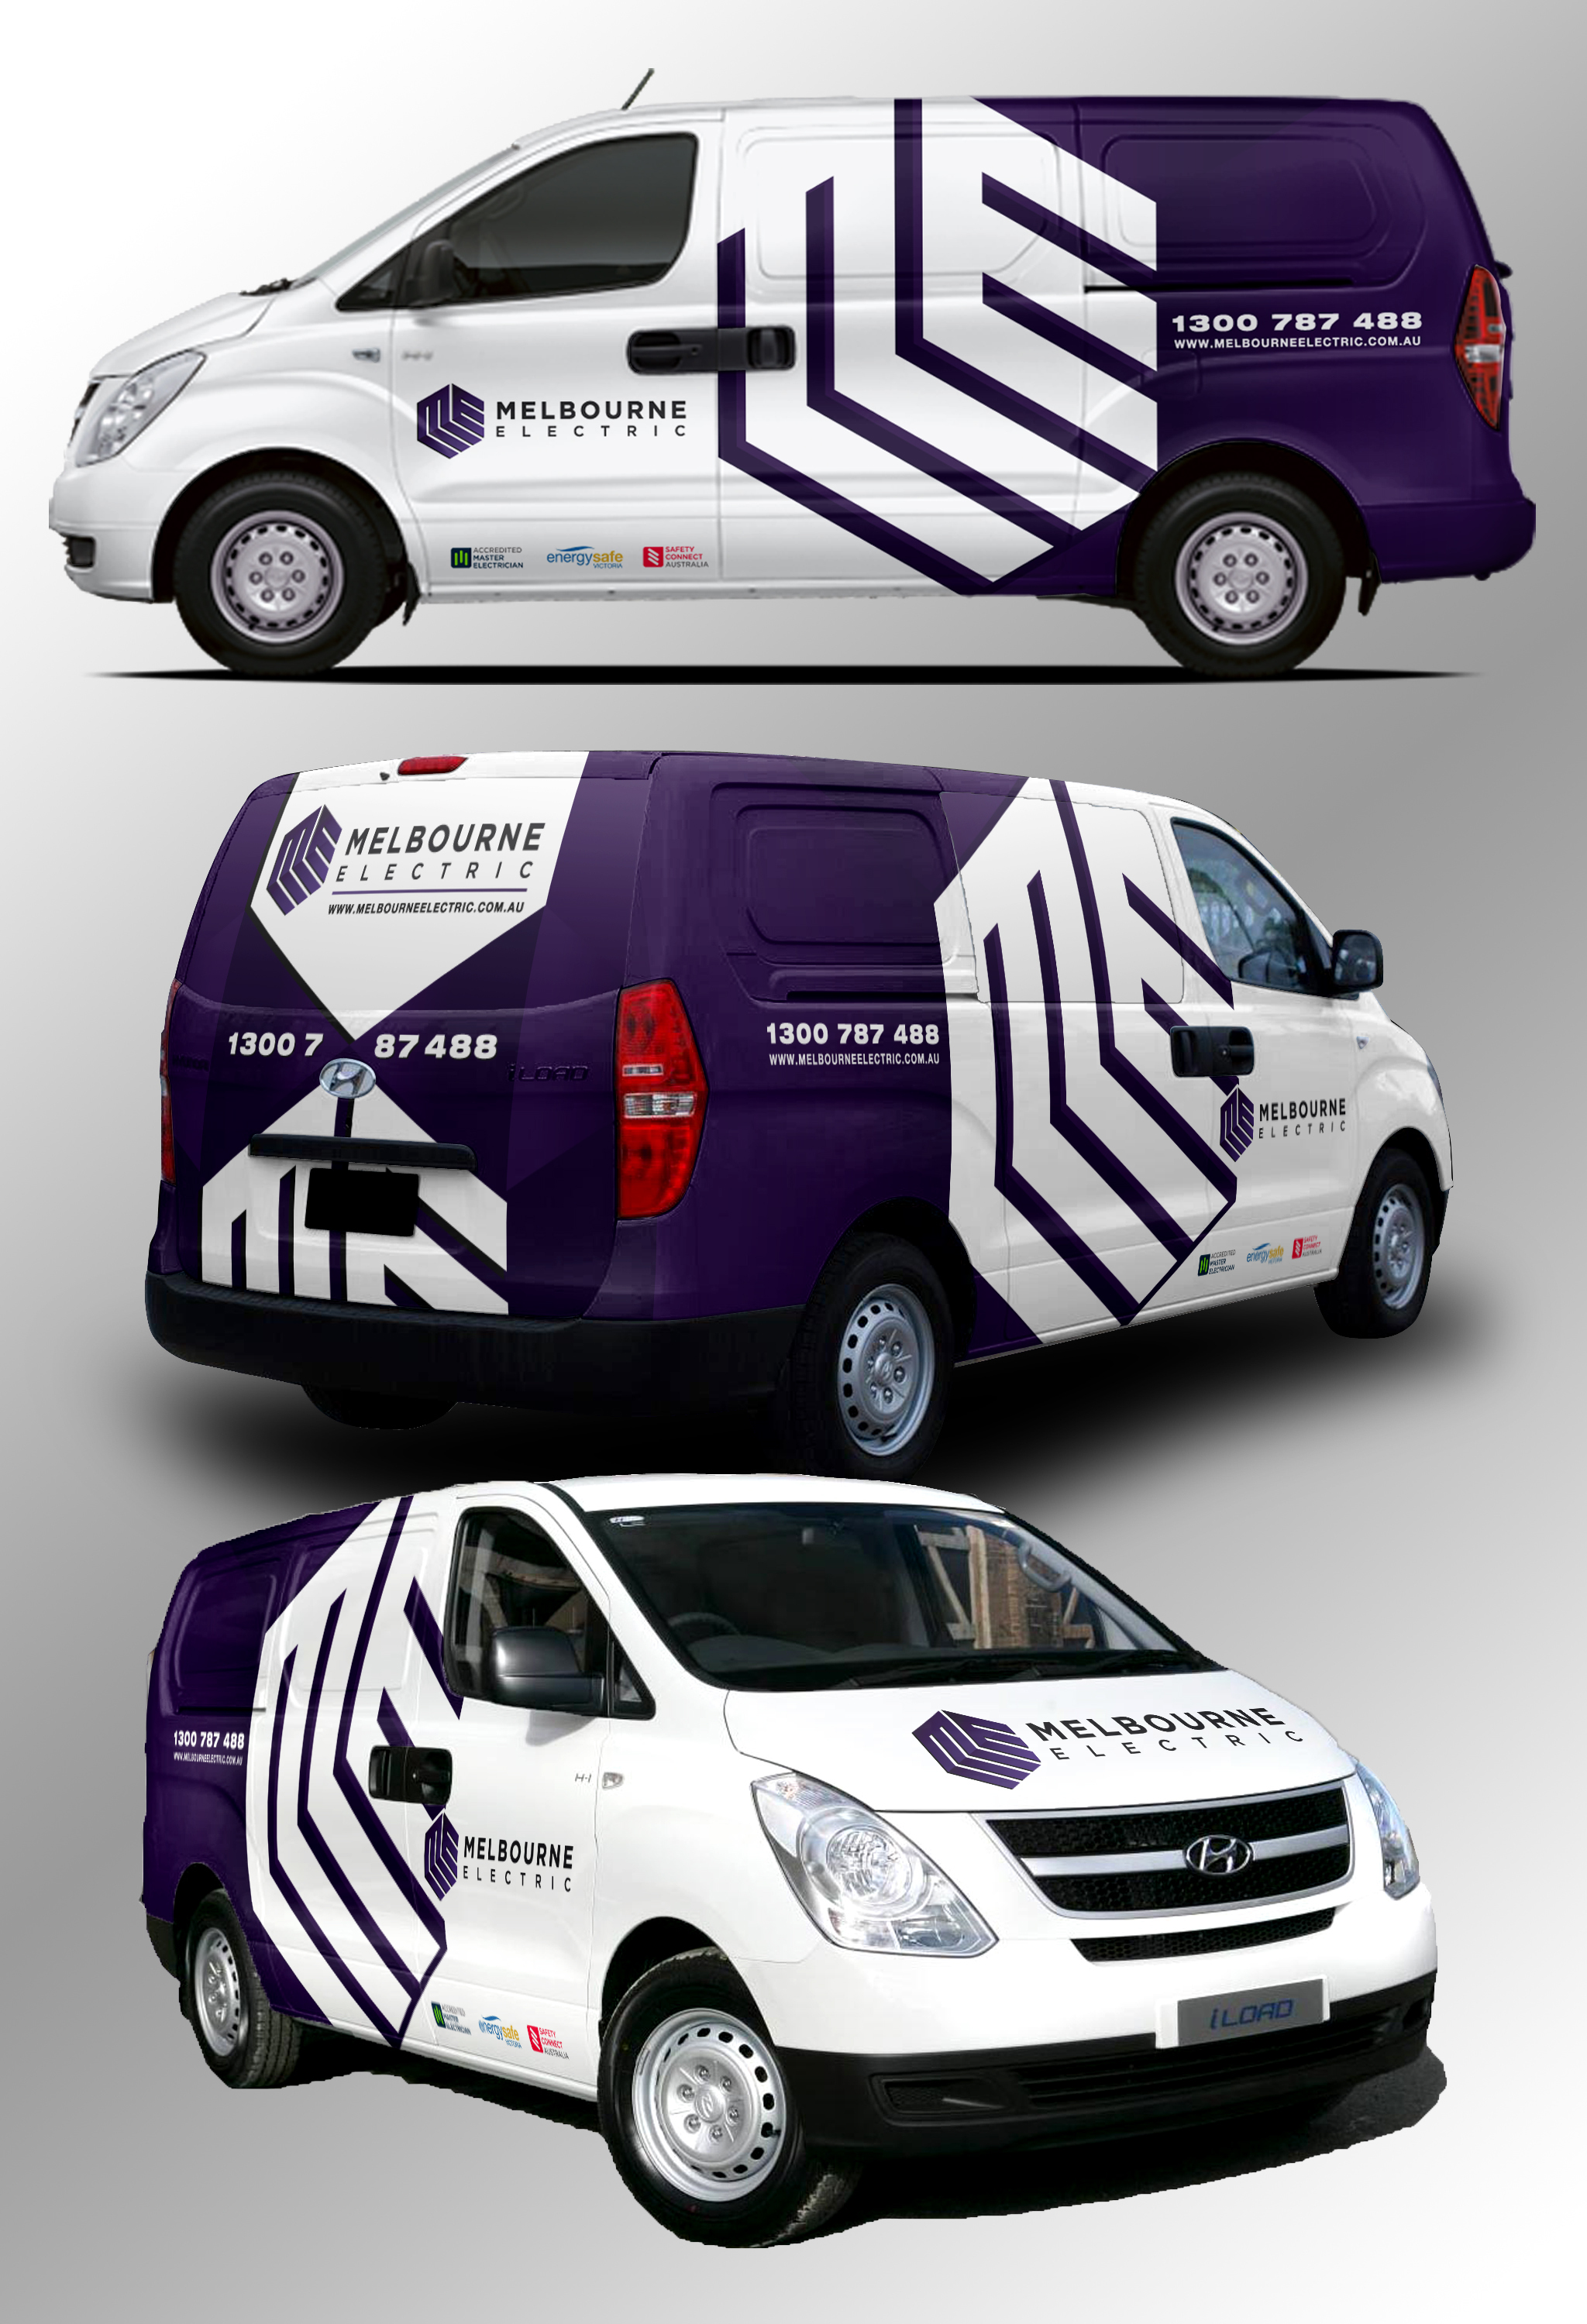 Createeyepoppingvandesignreputableelectricalcompany - Modern business vehicle decals